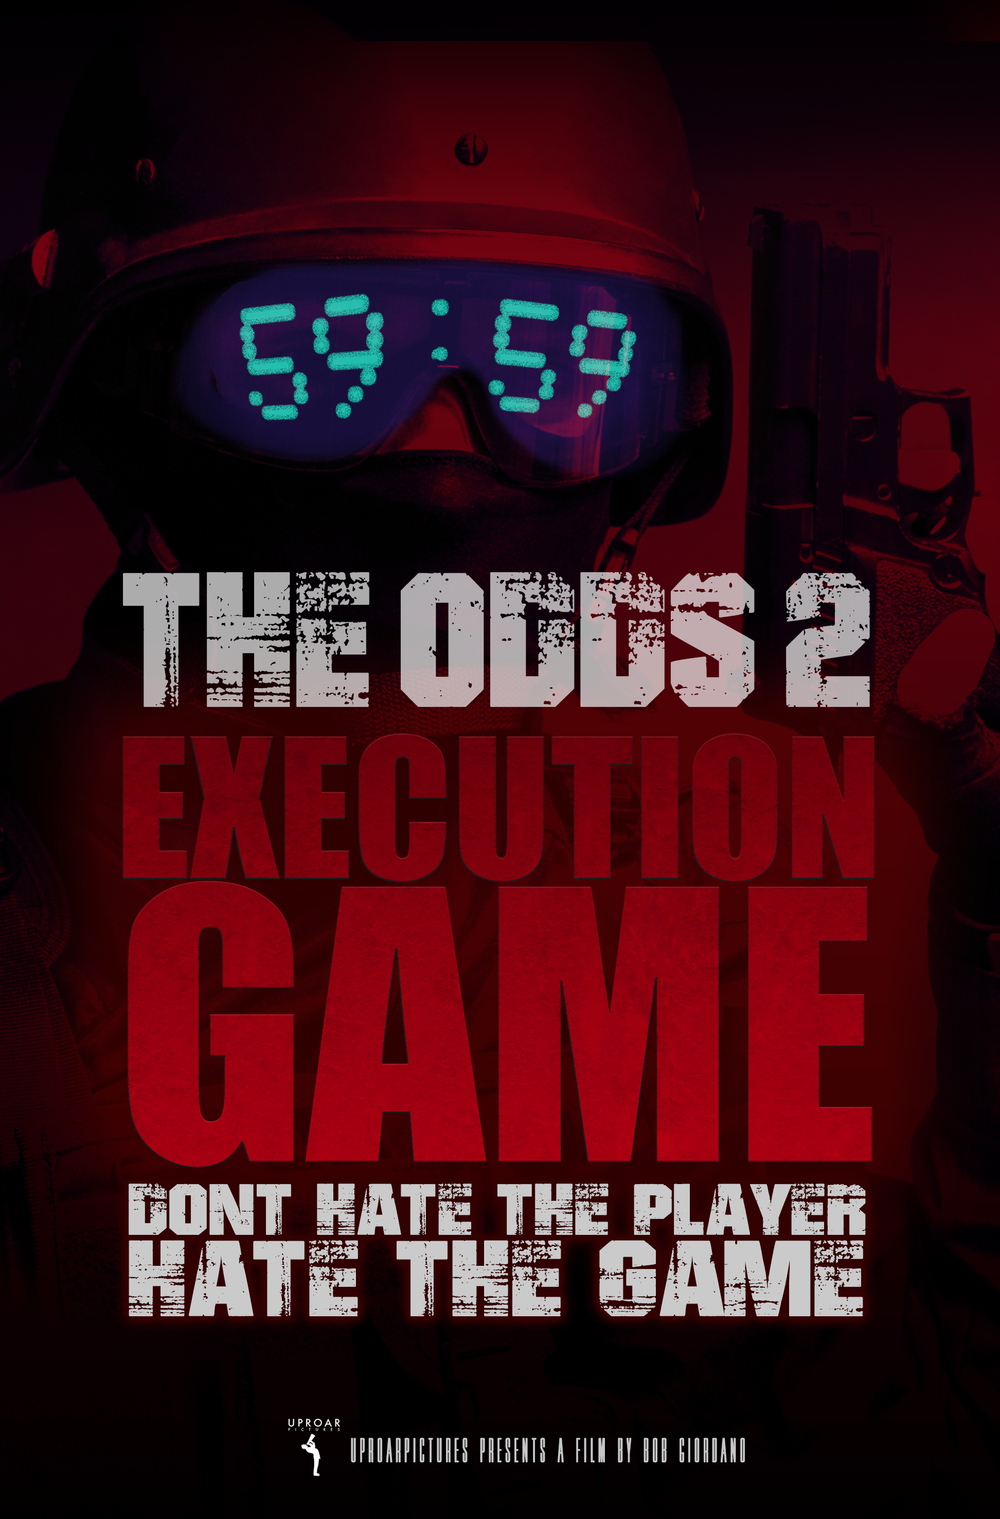 Execution Game Odds 2 v 1.png